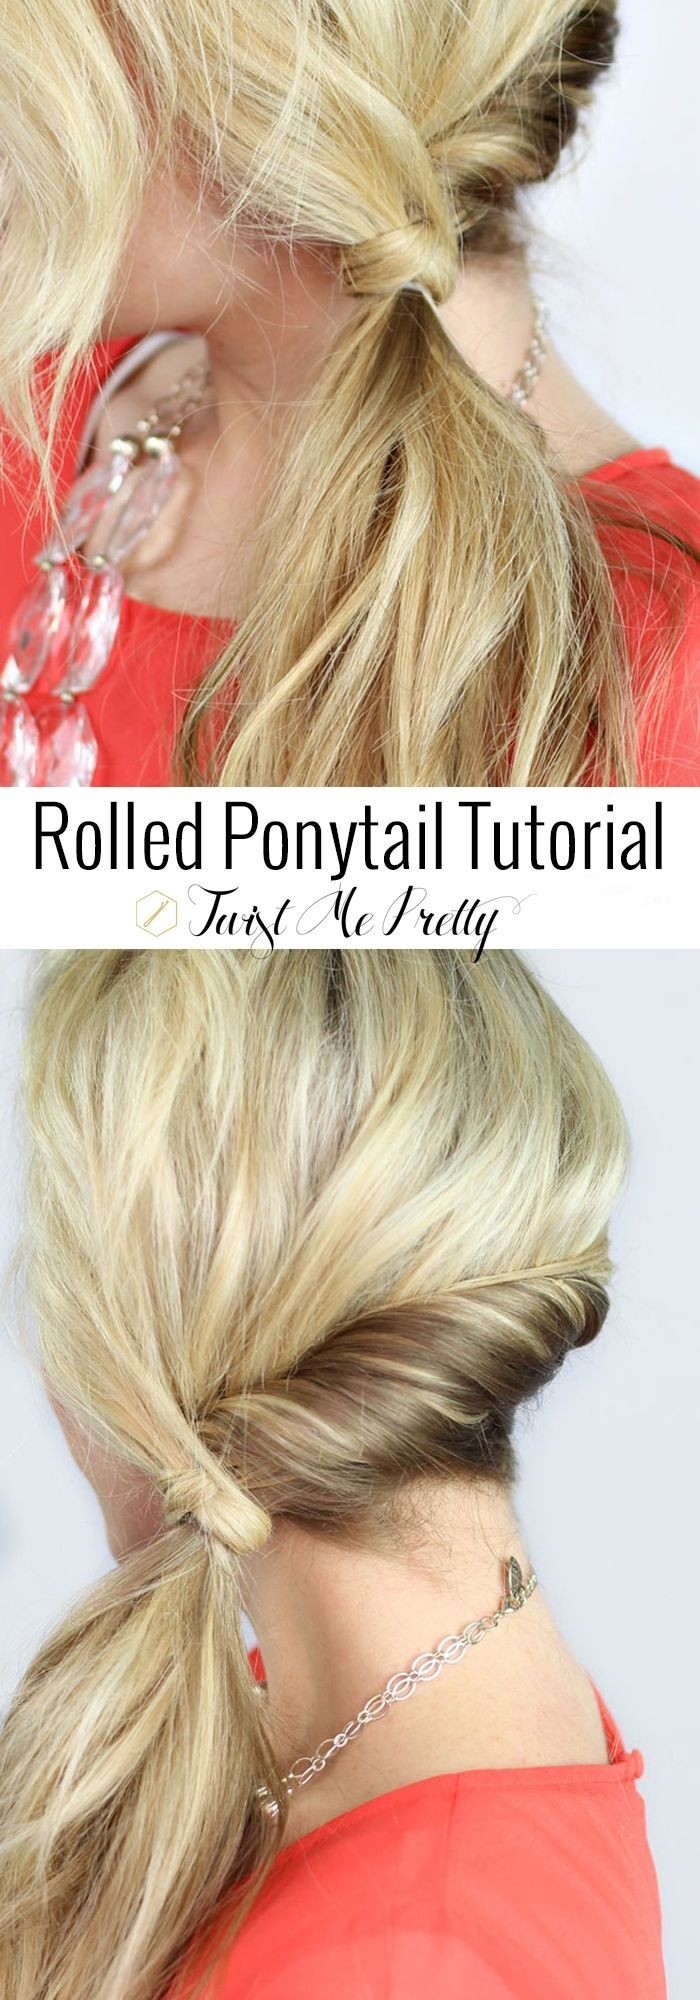 Rolled Ponytail Tutorial: Cute Everyday Hairstyles